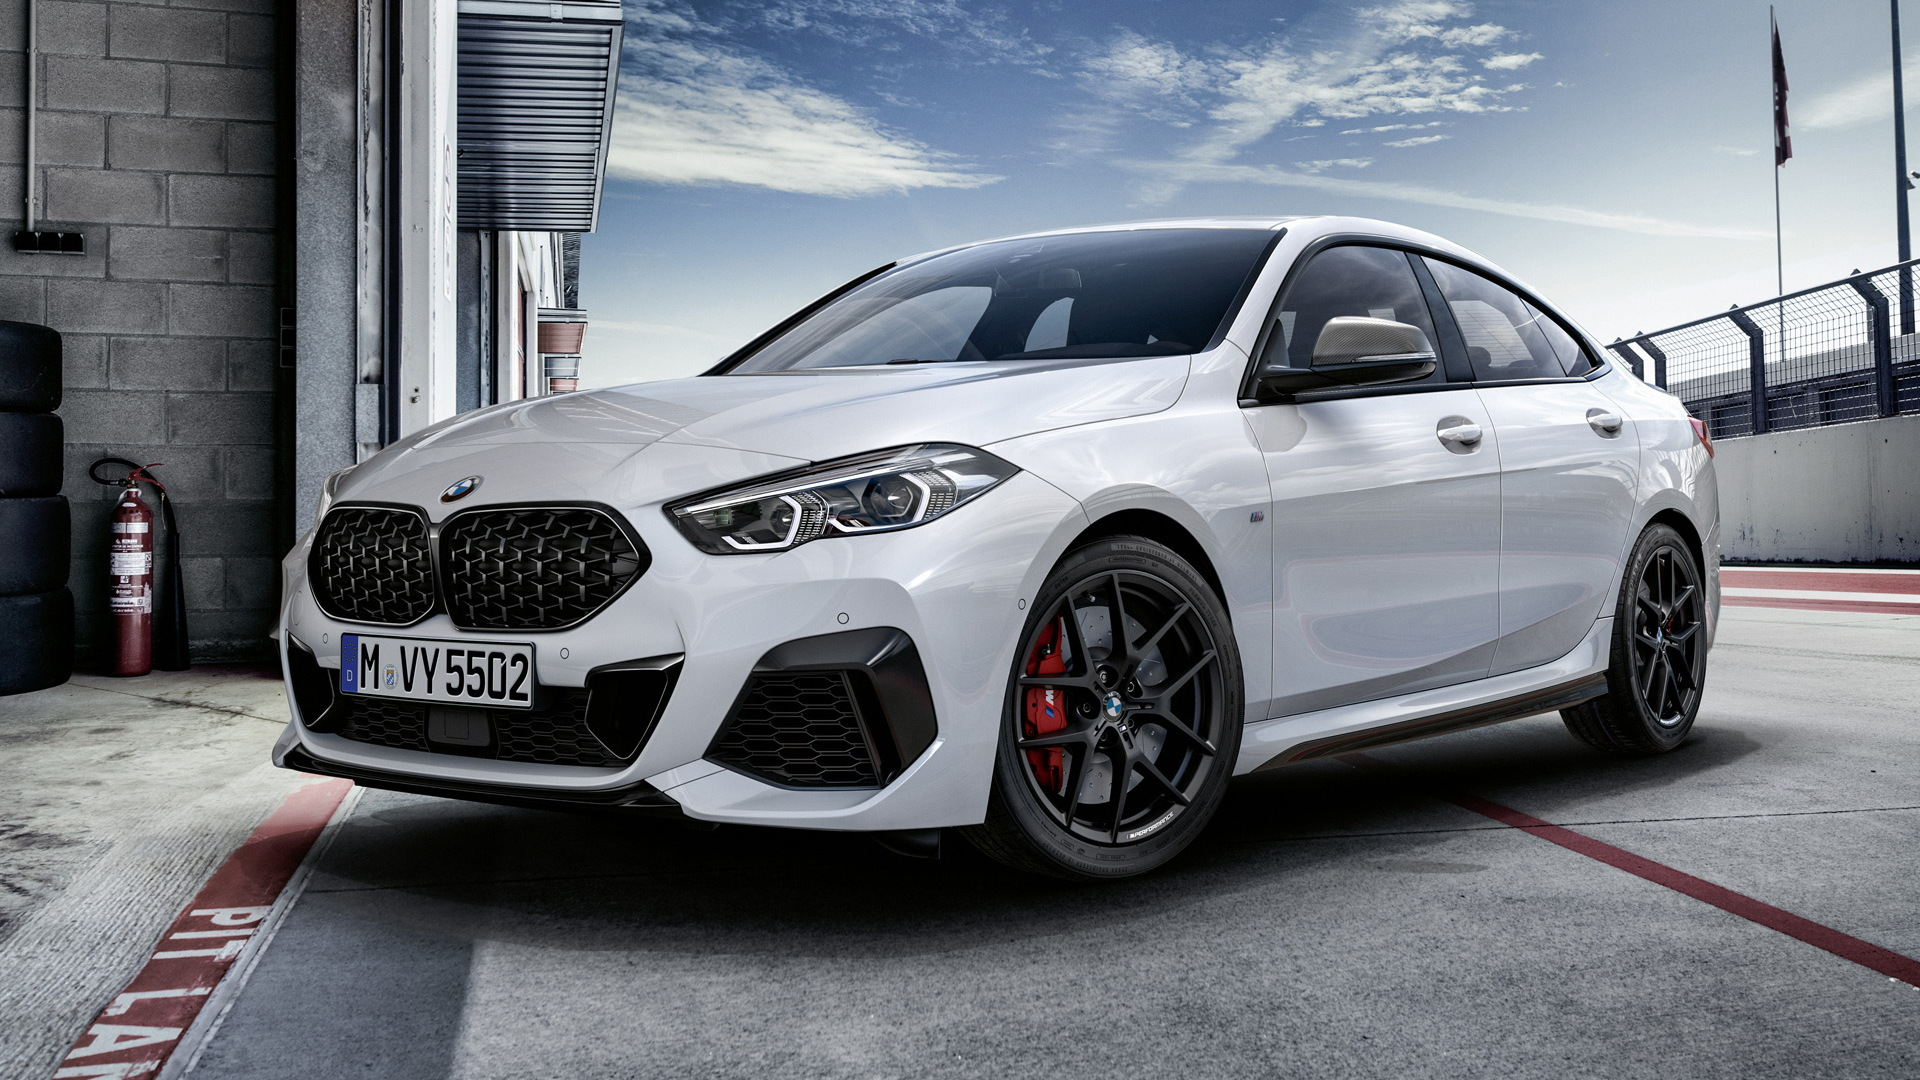 2020 BMW 2-Series Gran Coupe with M Performance parts